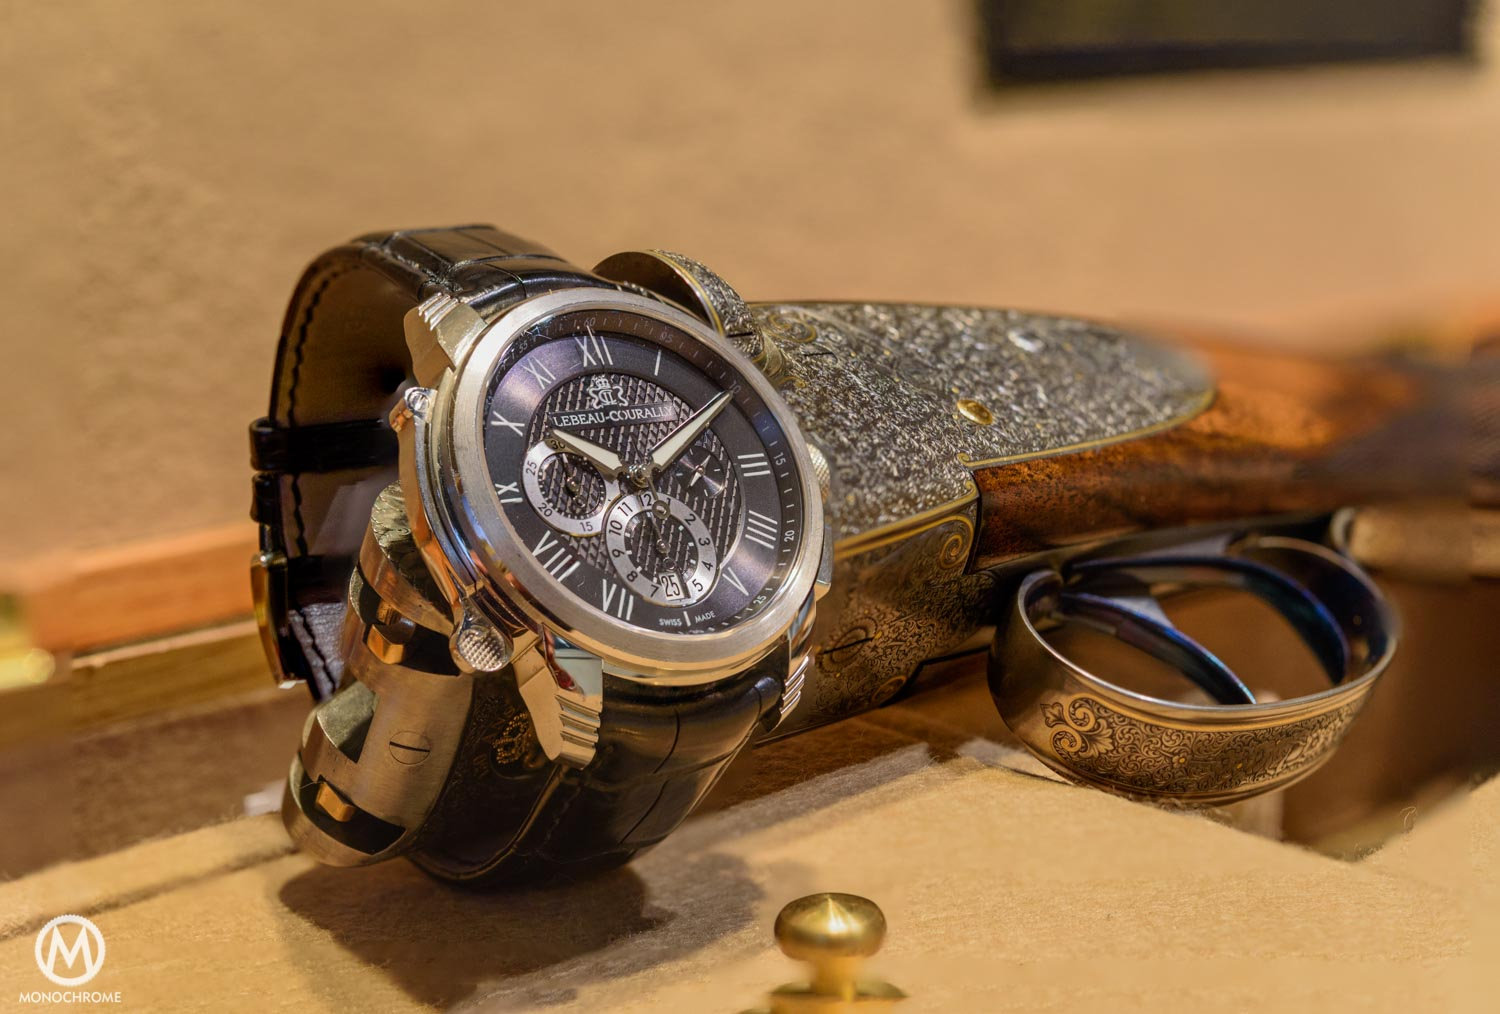 chronograph hunter favorite are what your watches hunting shooting sinn